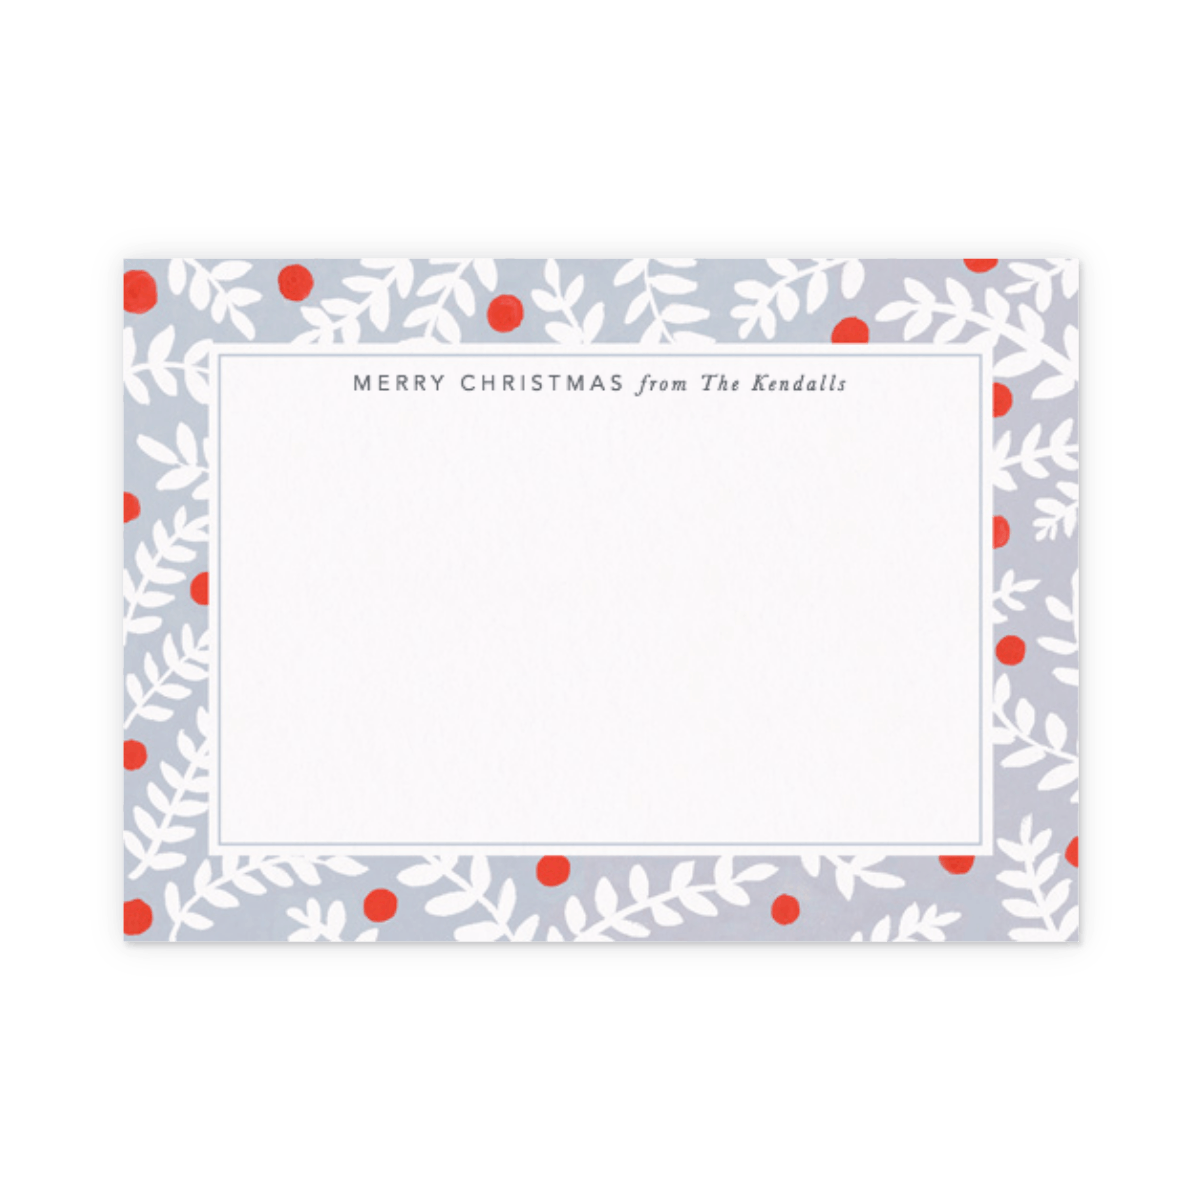 Https%3a%2f%2fwww.papier.com%2fproduct image%2f26061%2f10%2fchristmas berries 6522 front 1551216954.png?ixlib=rb 1.1